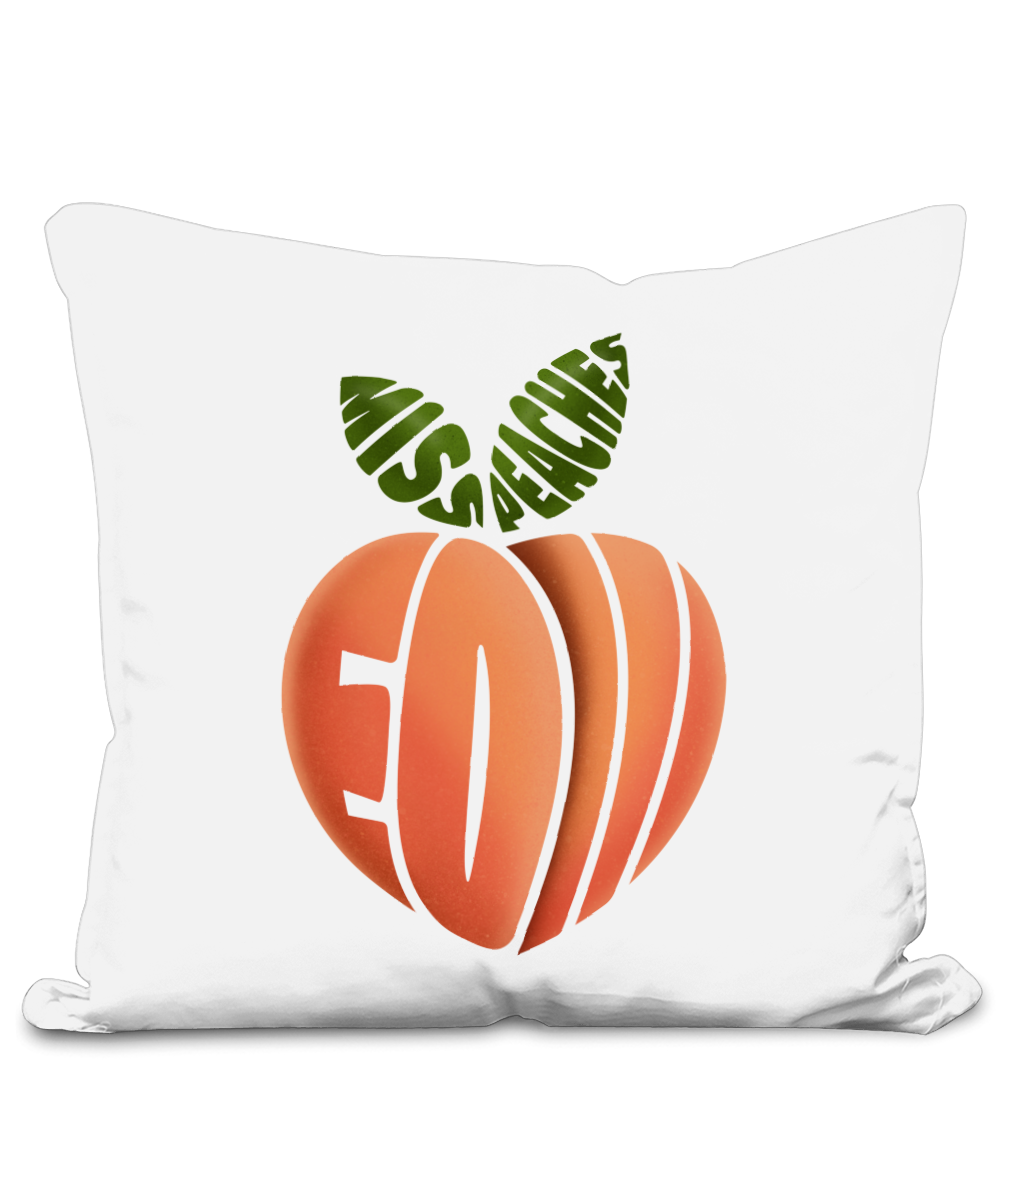 Miss Peaches - EOI Cushion Cover - SNATCHED